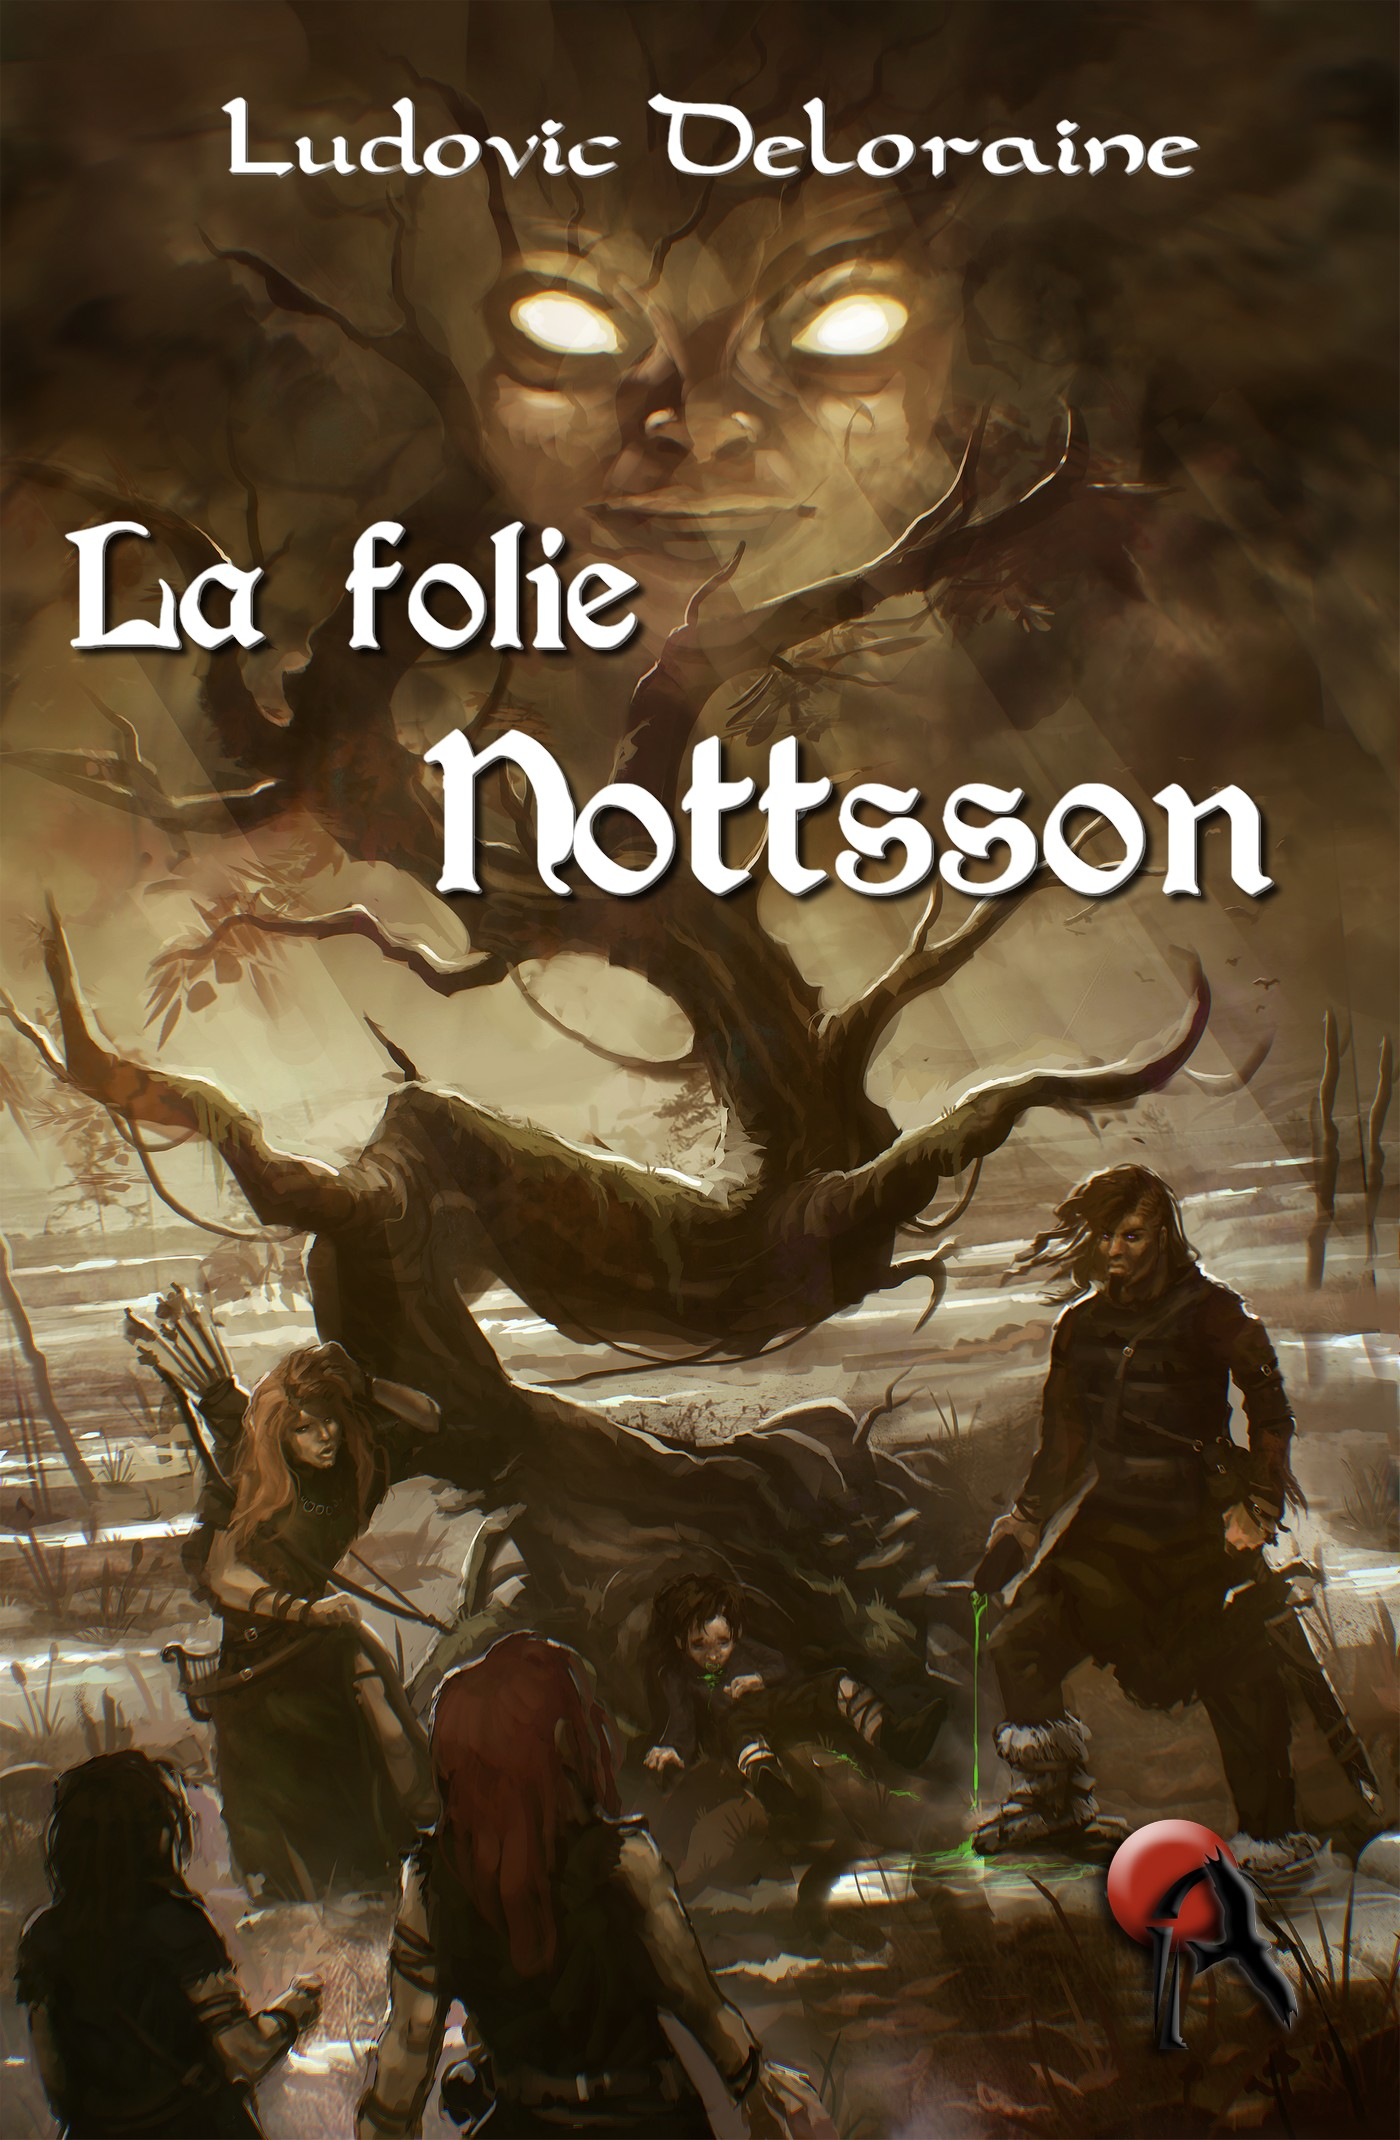 La folie Nottsson